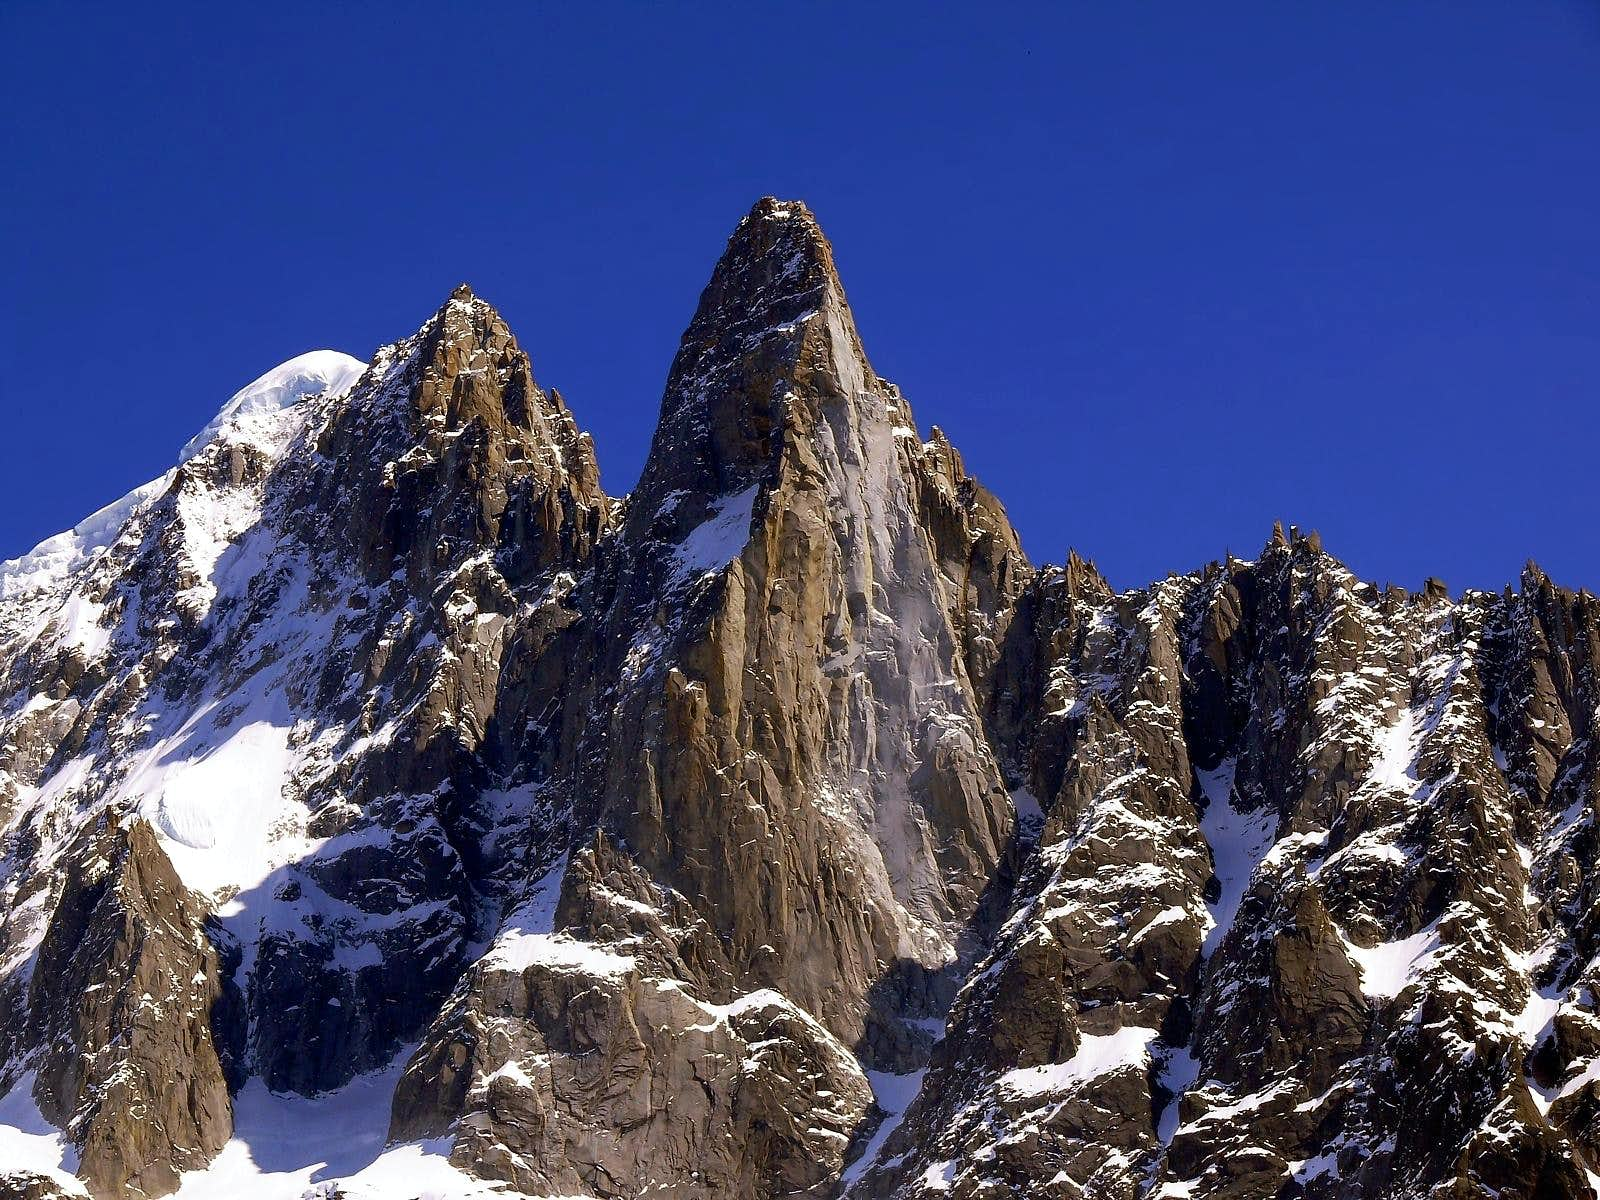 <font color=blue>▲</font>Views of Dru-Aiguille Verte